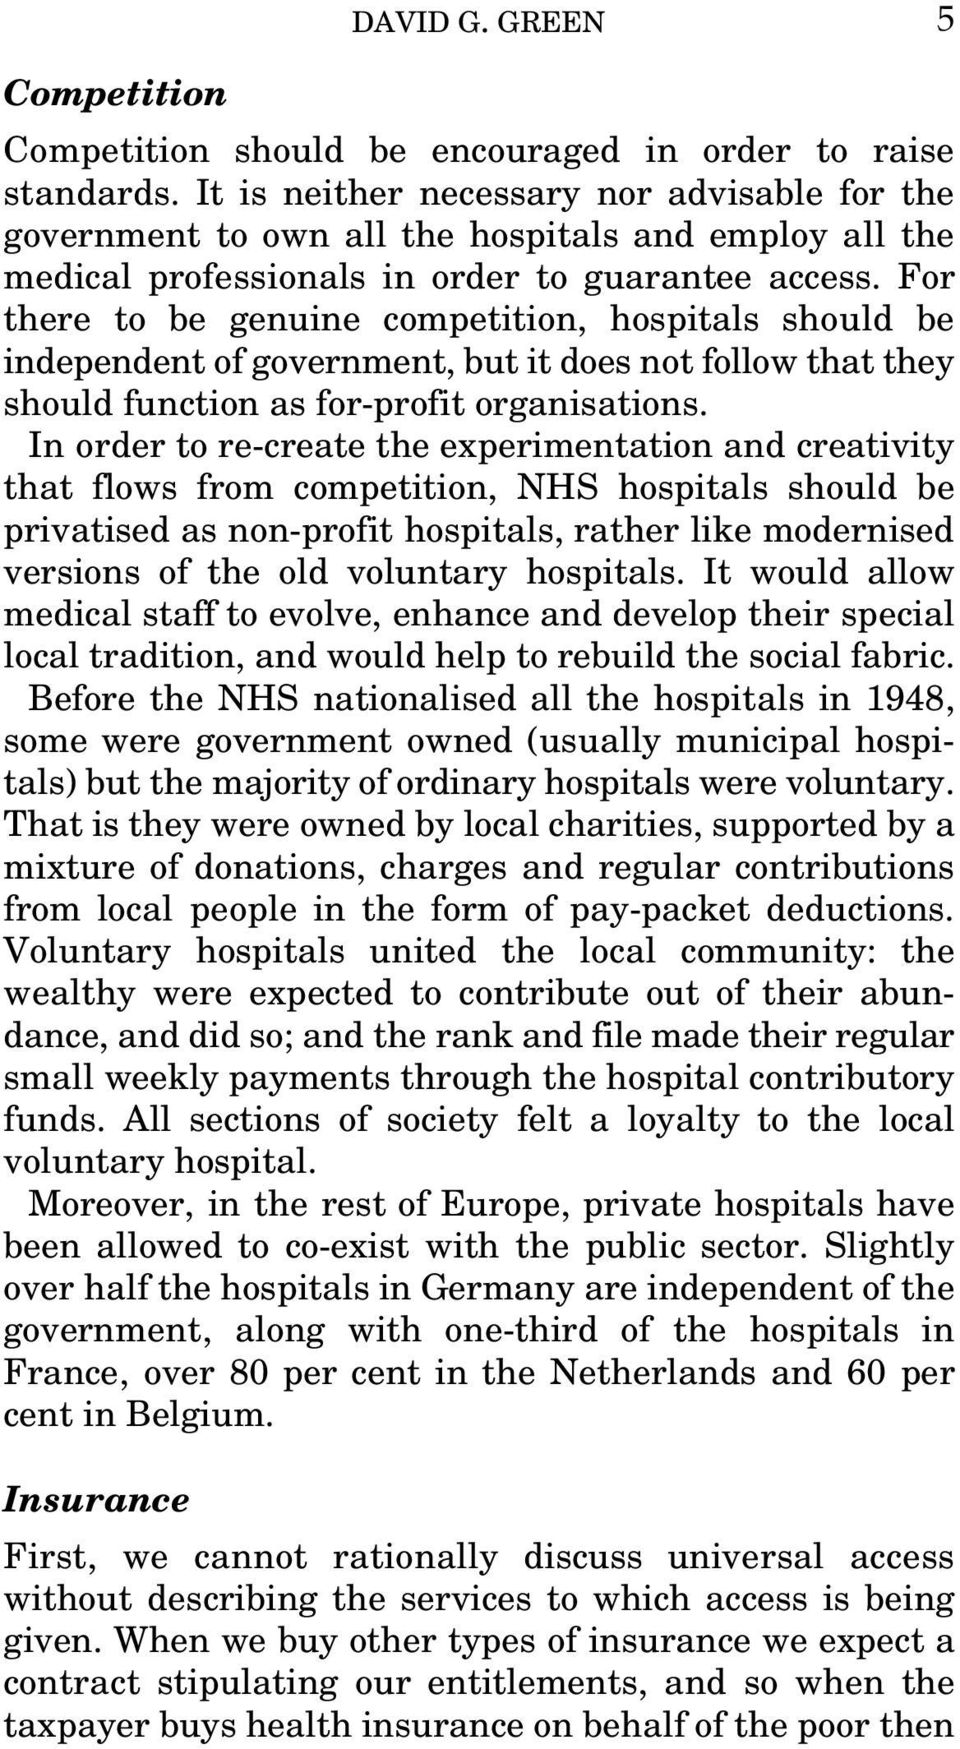 For there to be genuine competition, hospitals should be independent of government, but it does not follow that they should function as for-profit organisations.